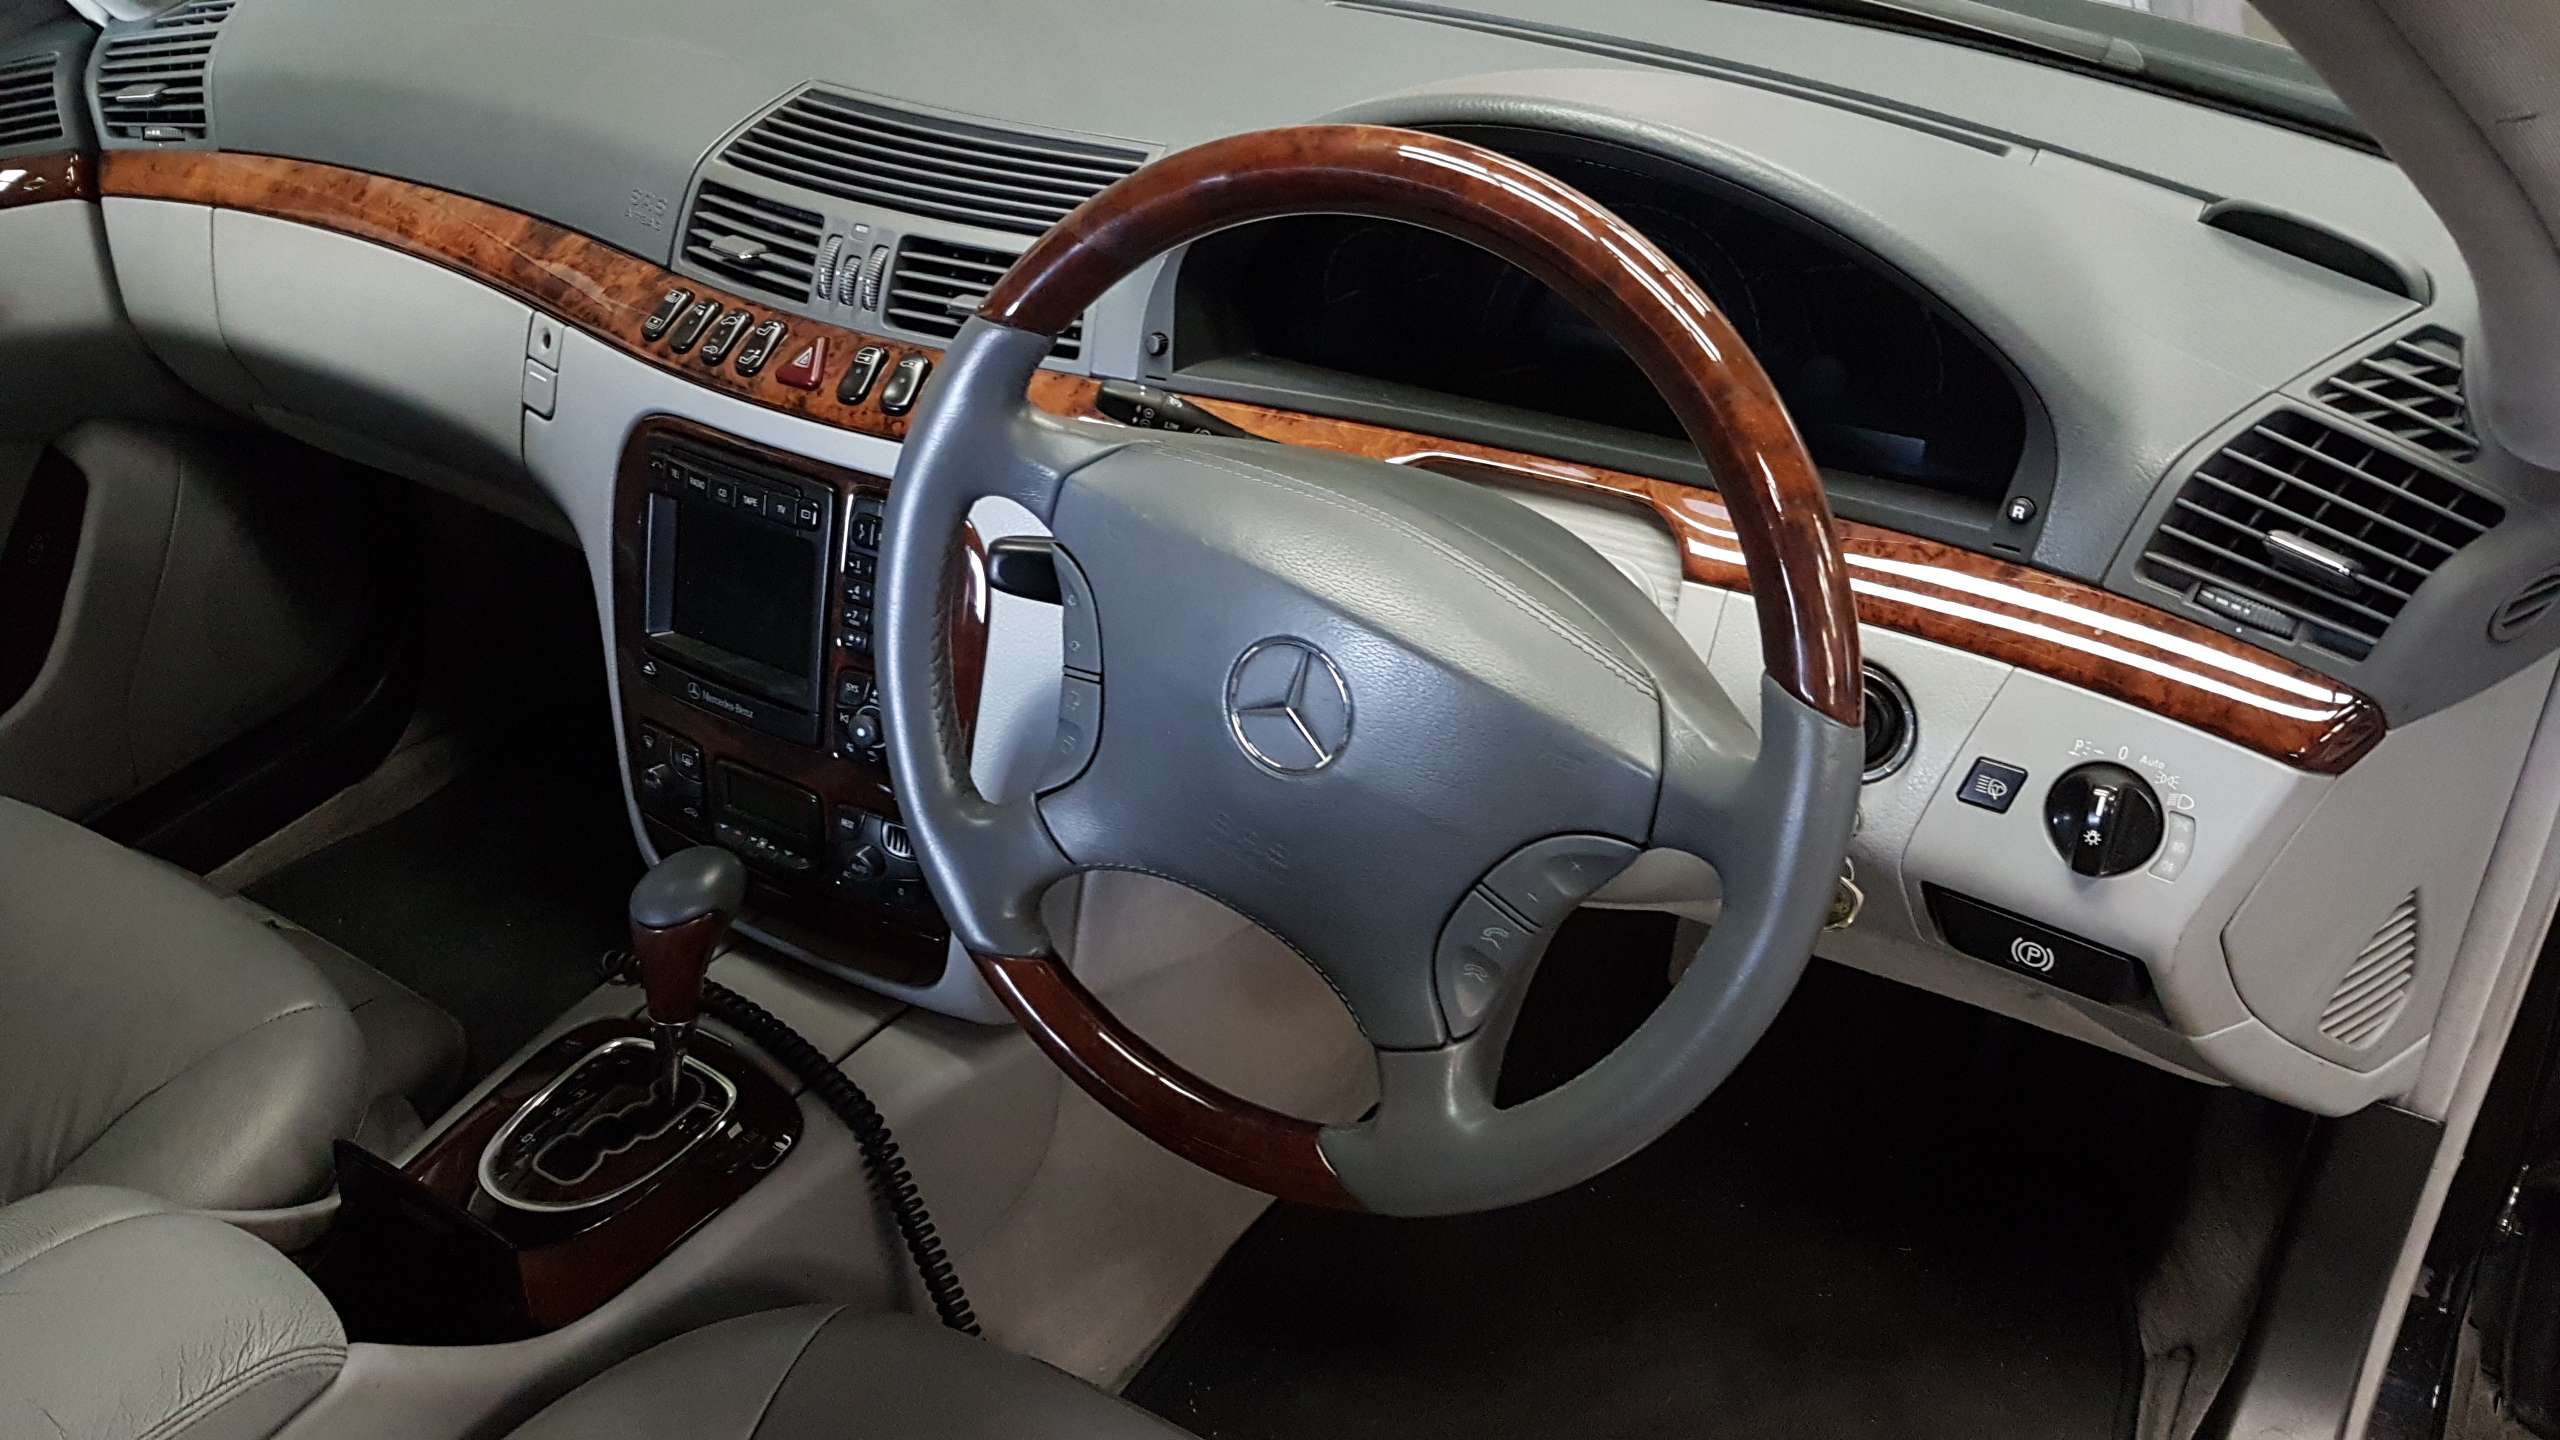 Mercedes S Class Steering Wheel Restored